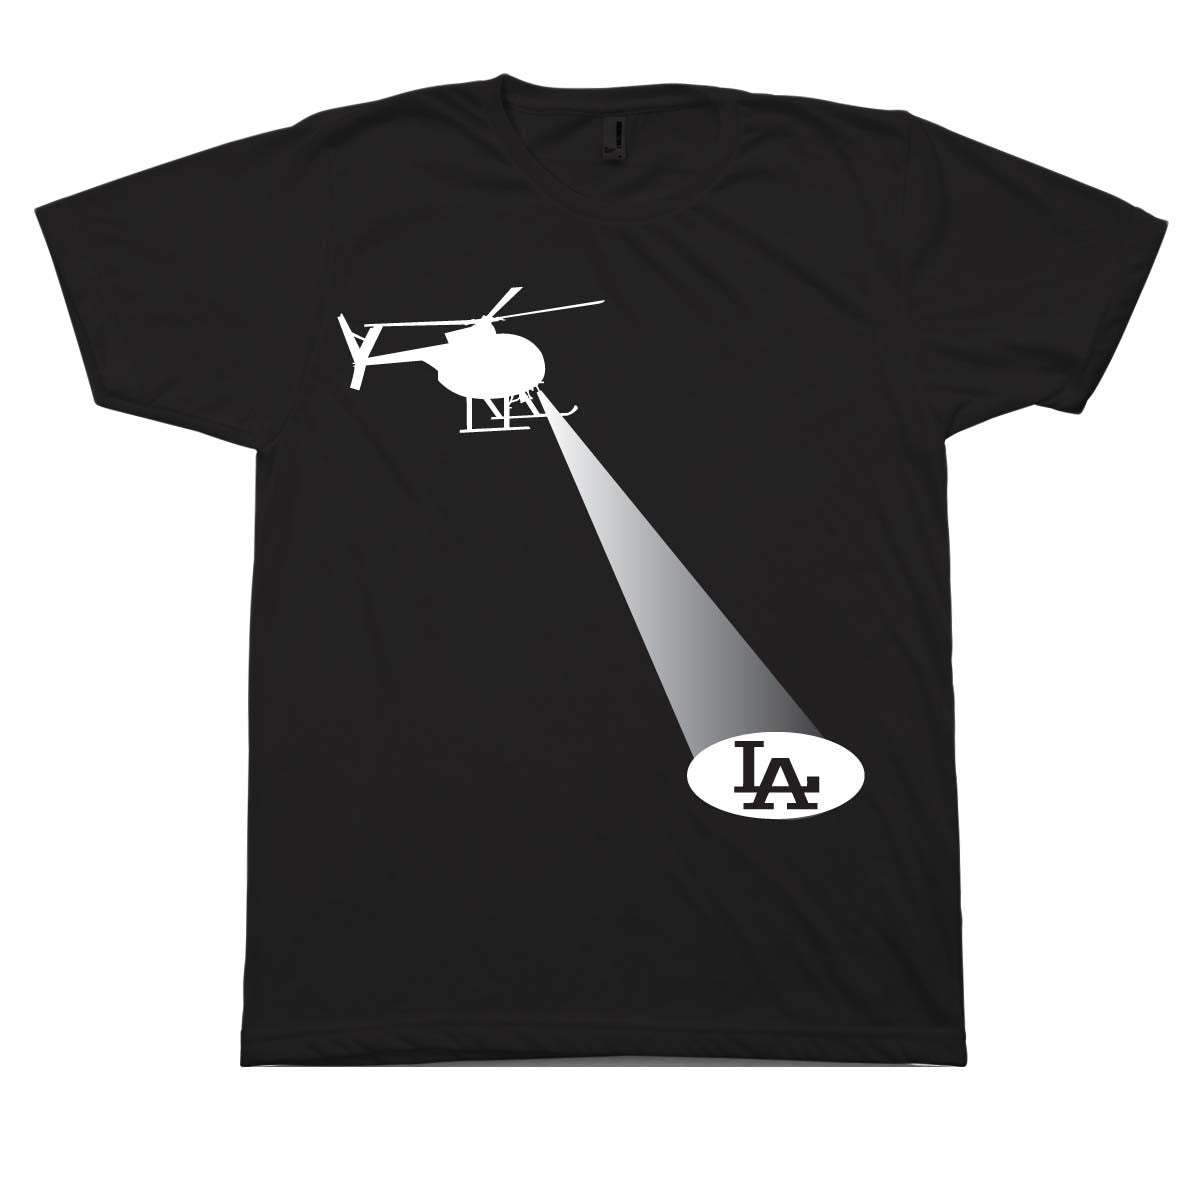 LA Ghetto Bird T-Shirt